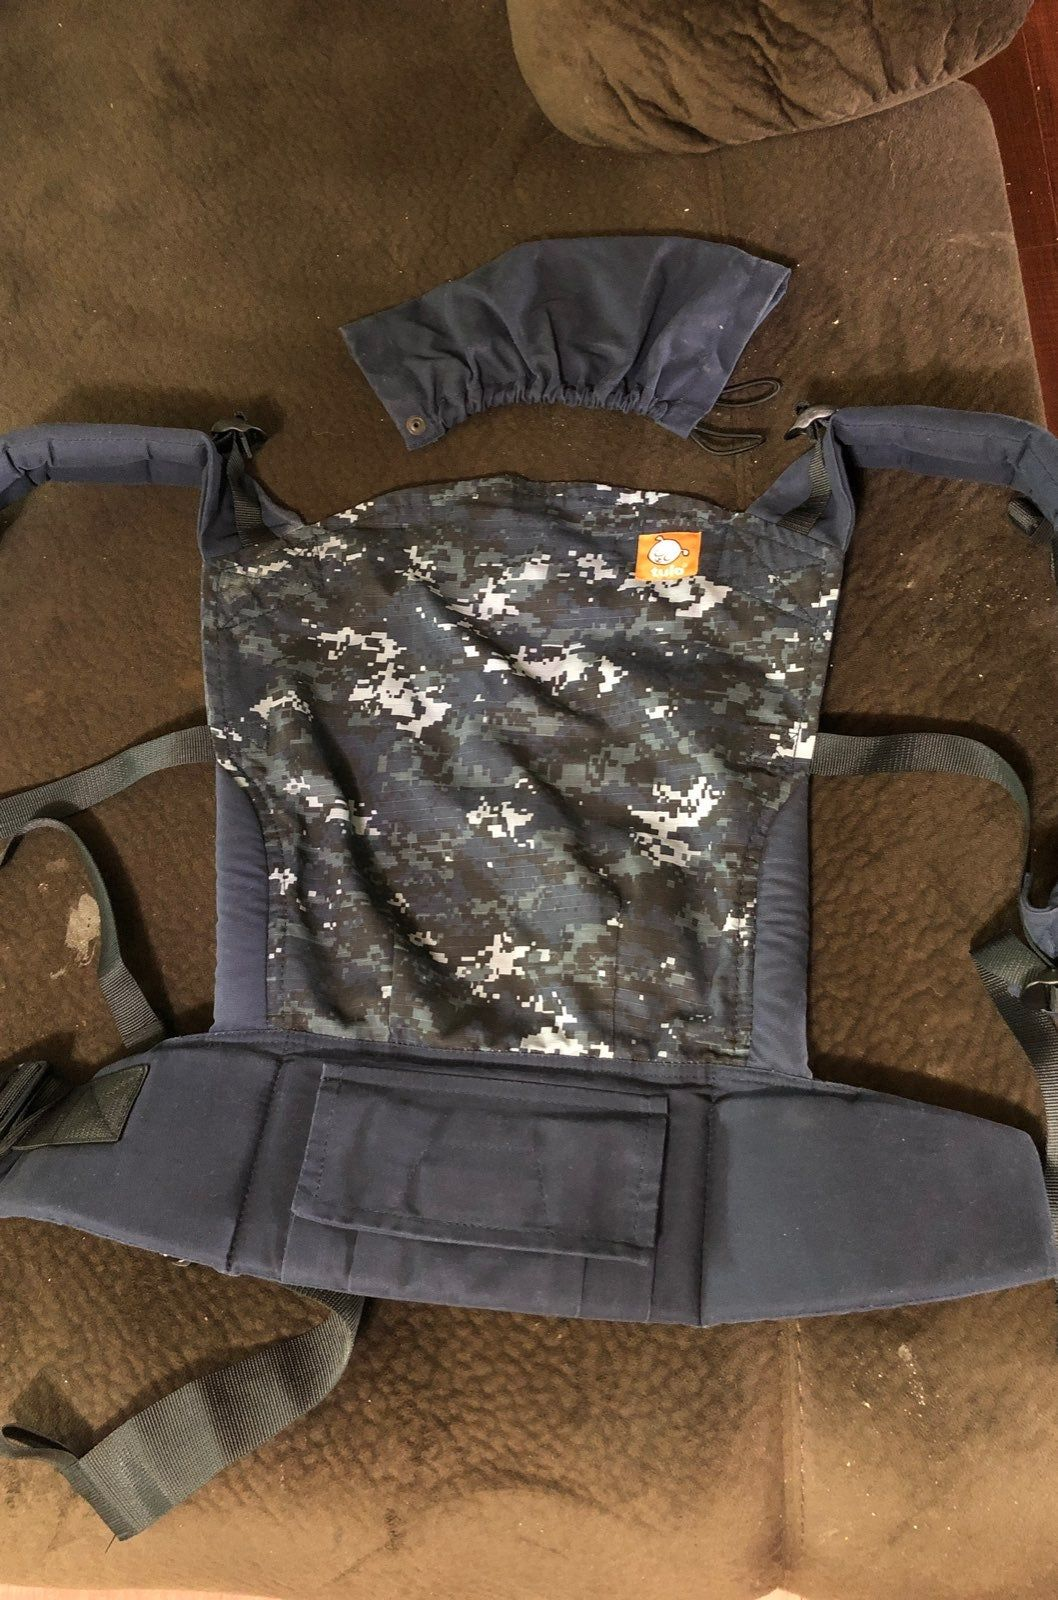 Euc Tula Baby Carrier In Navy Digital Camo Print Includes Infant Insert And Baby Head Cover Ring Sling Baby Carrier Tula Baby Carrier Baby Carrier